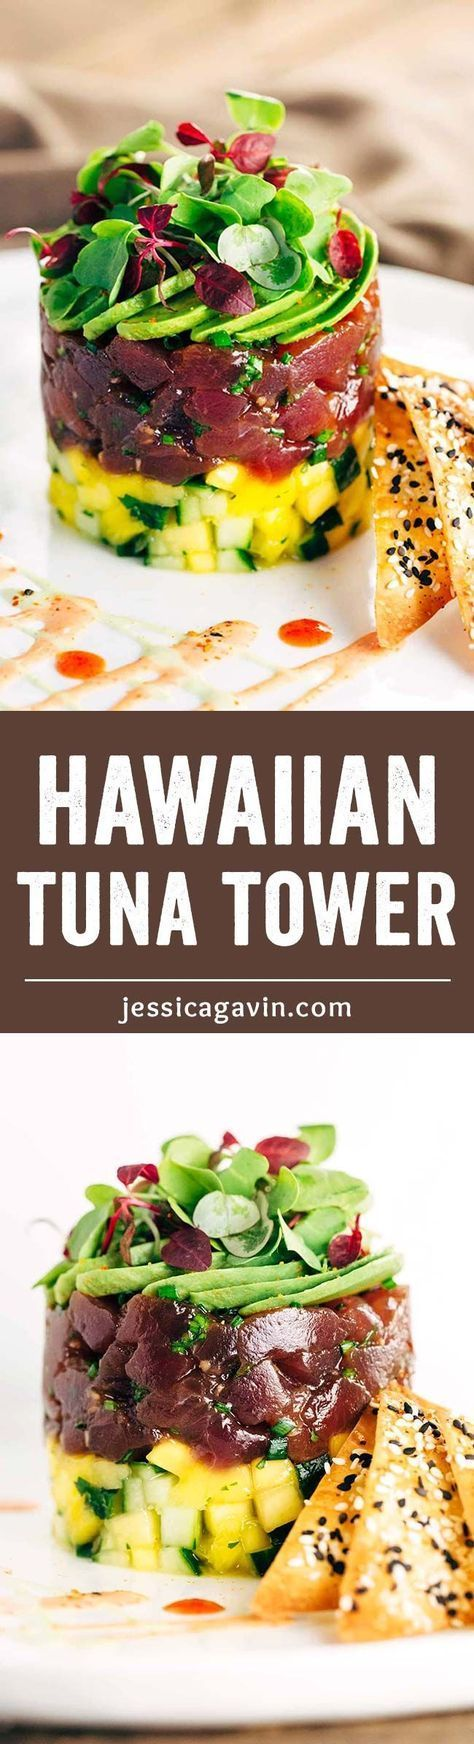 Hawaiian Bigeye Tuna Tower with Sesame Wonton Crisps - Simple yet elegant recipe combines bold flavors of the delectable ahi tuna with the crunchy baked spiced crackers. | jessicagavin.com